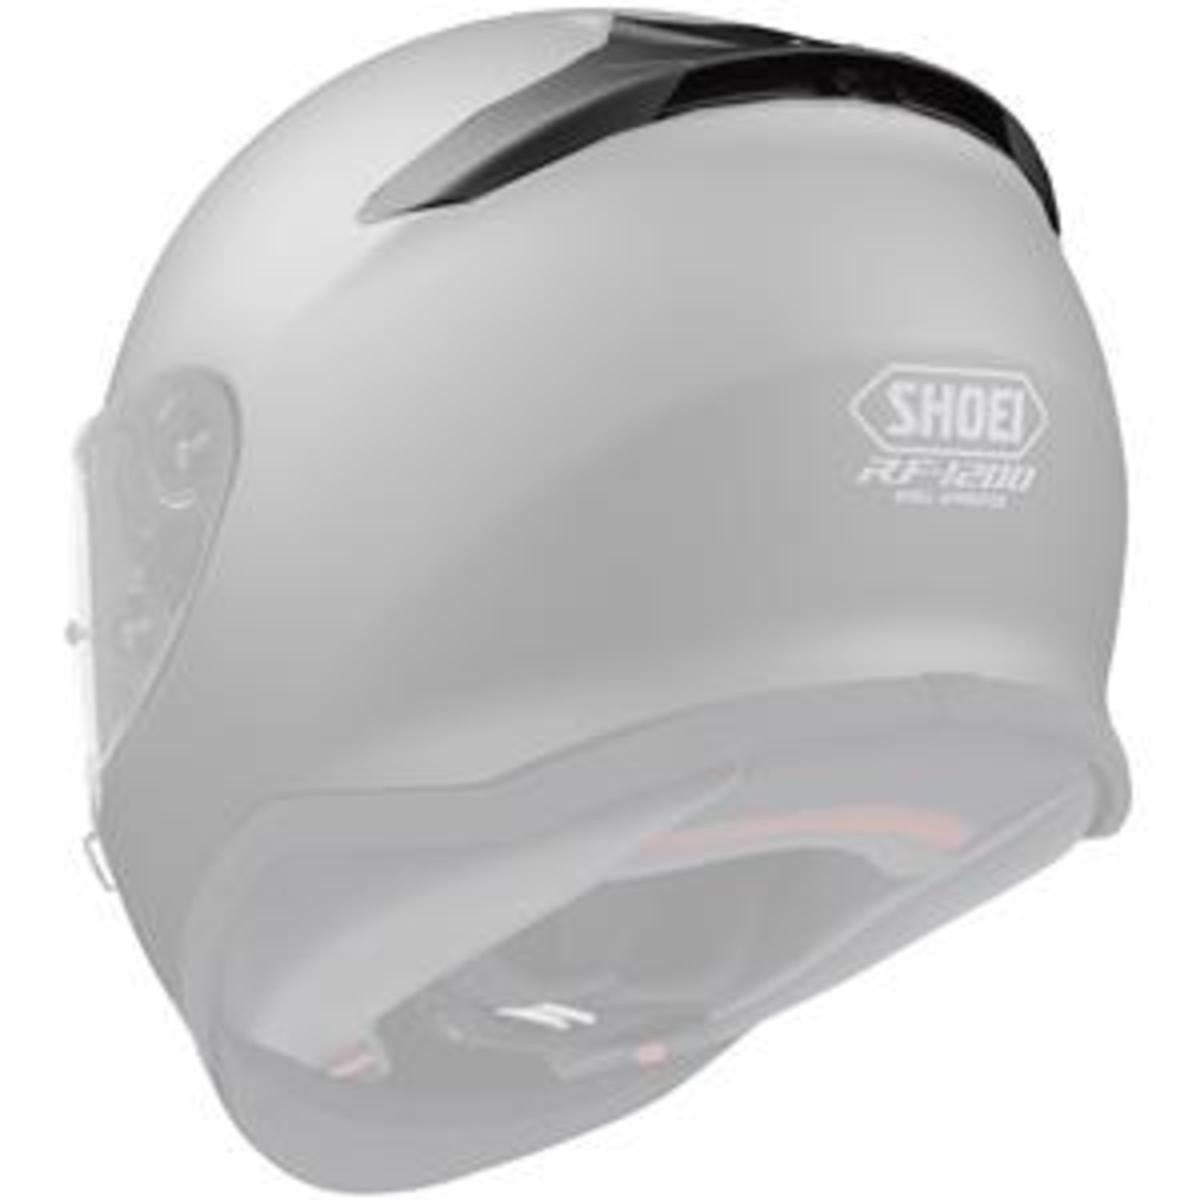 Shoei RF-1200 Top Air Outlet Vent